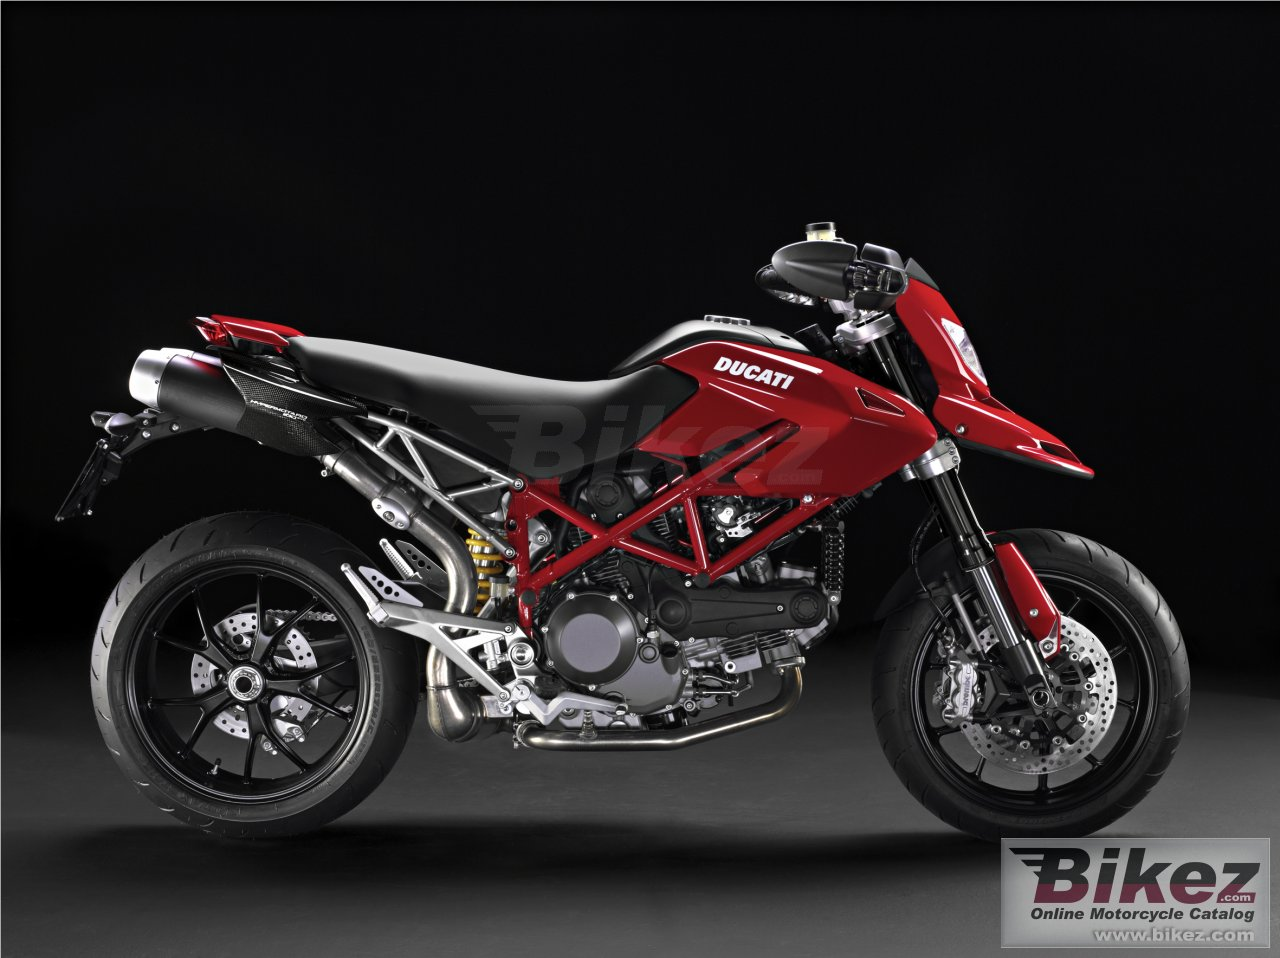 Big Ducati hypermotard 1100 evo picture and wallpaper from Bikez.com